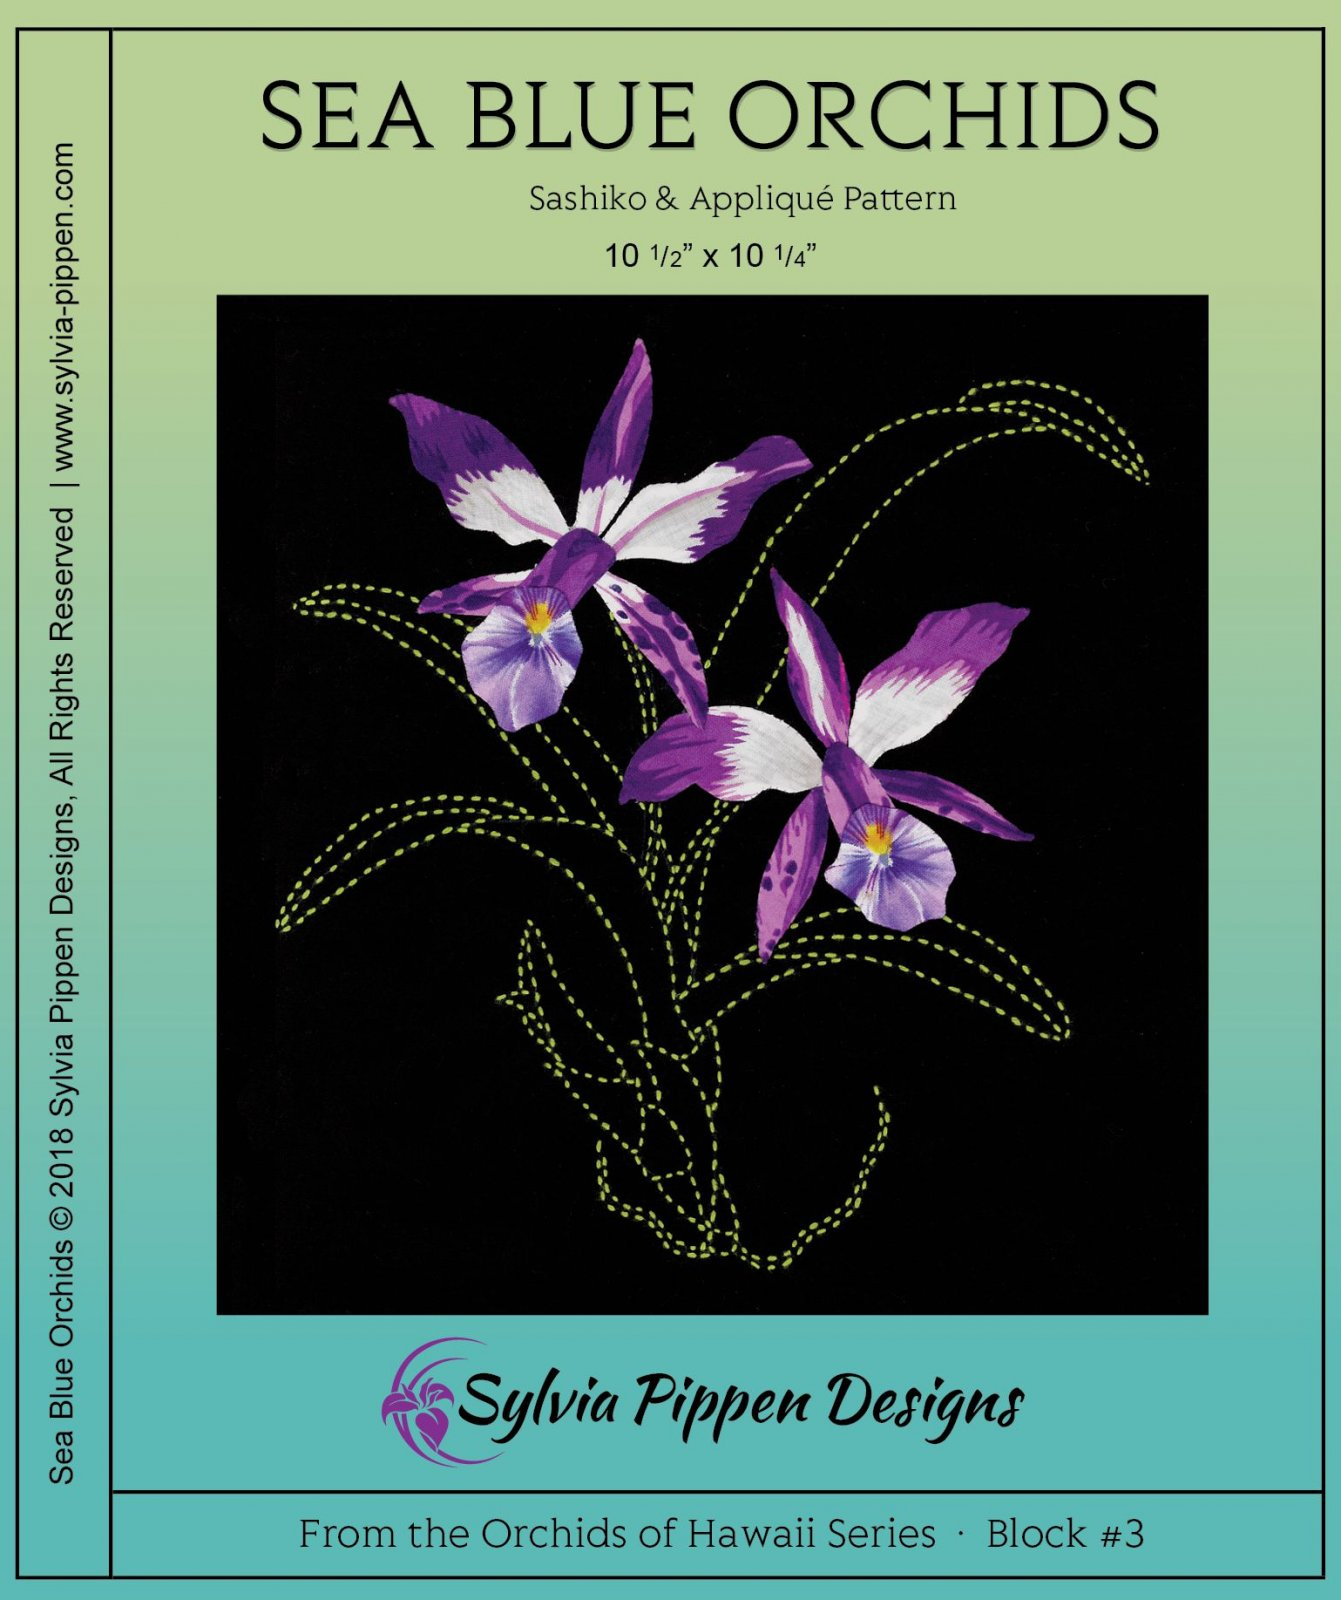 Sea Blue Orchids Sashiko & Applique Fabric Kit from the Orchids of Hawaii Series